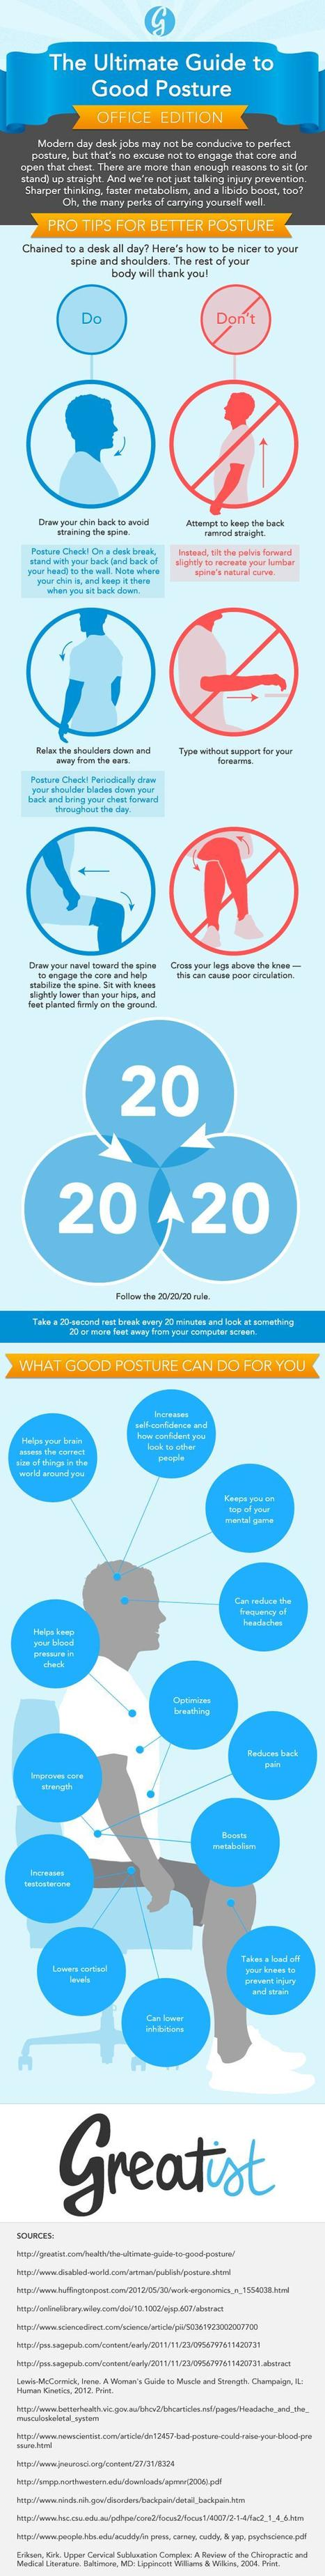 Posture-at-Work-Infographic1.jpg (604×4780) | Lifestyle | Scoop.it